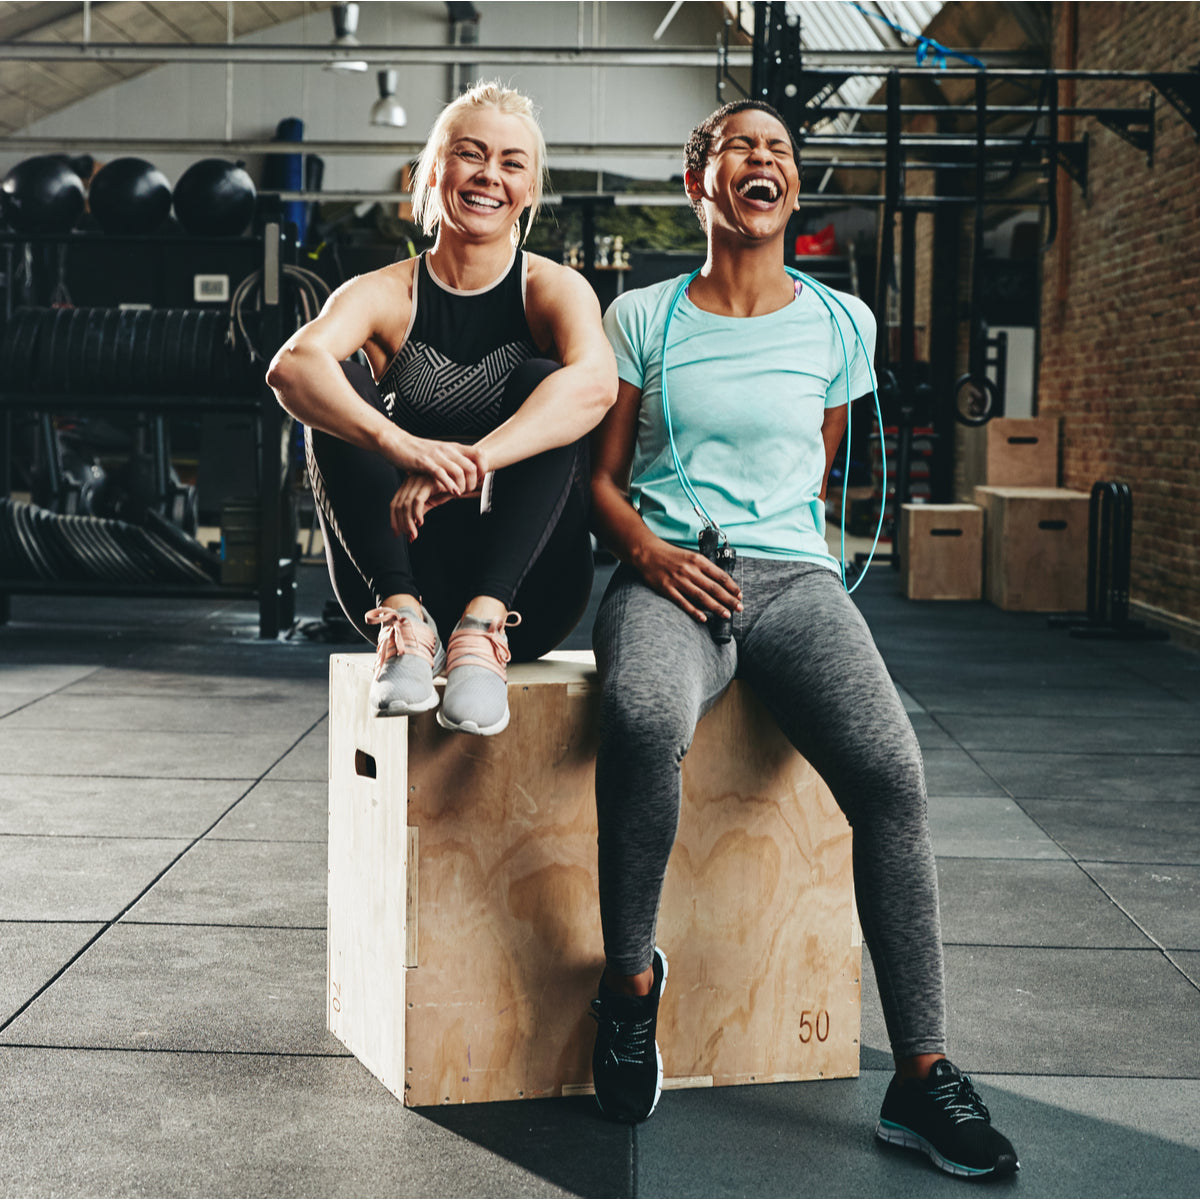 HOW TO CHOOSE A GOOD WORKOUT COMPANION